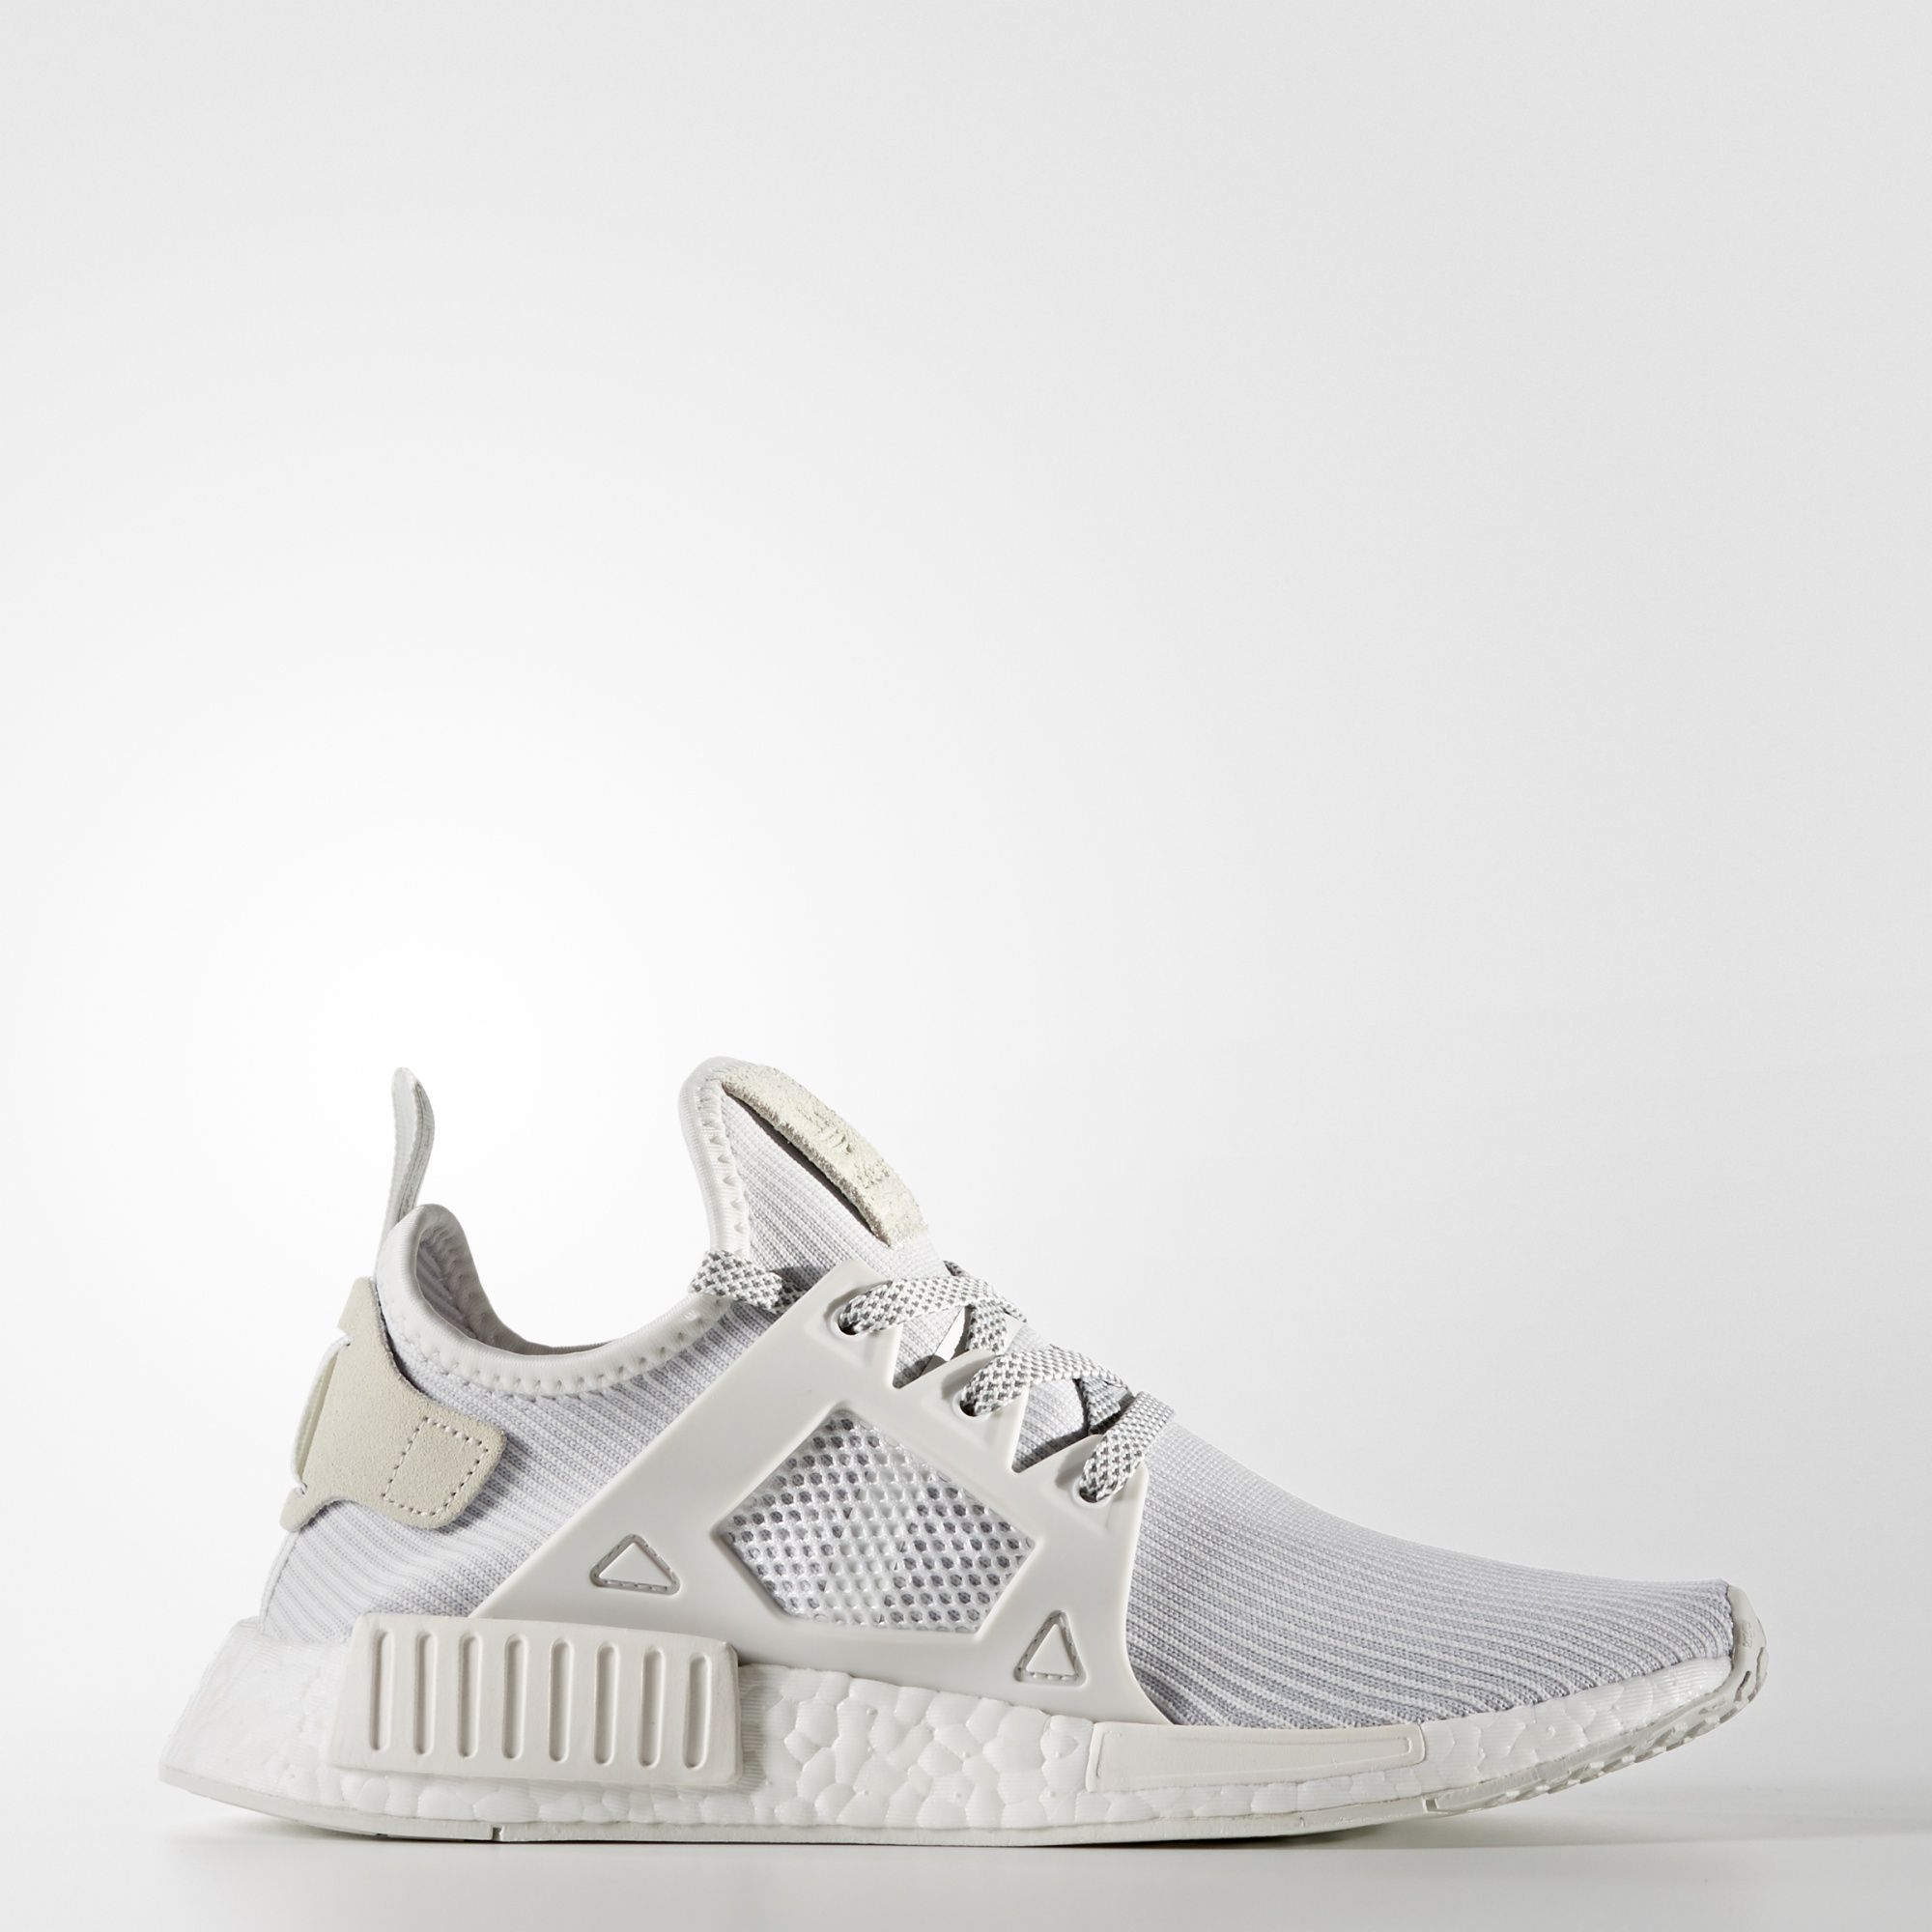 official photos c08dd be37d A high-tech sneaker with two-tone mélange detailing. Womens White Adidas,